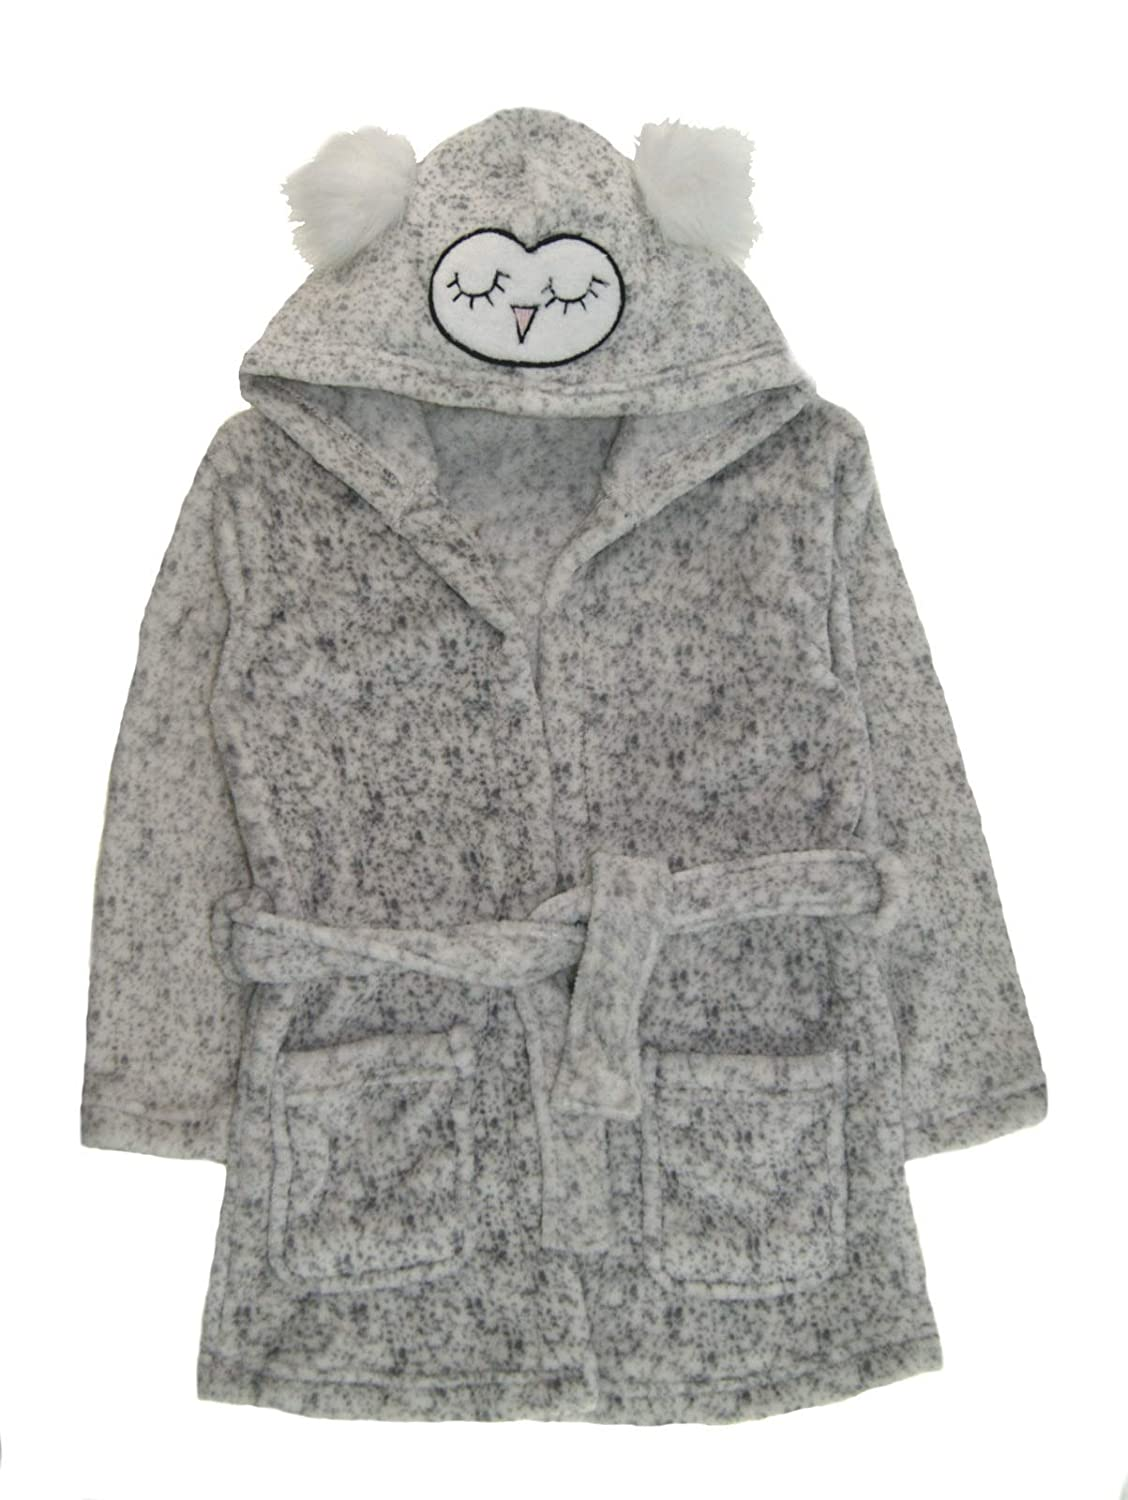 Scruffy Ted Boys Shark Dressing Gown Hooded 3D Bath Robe